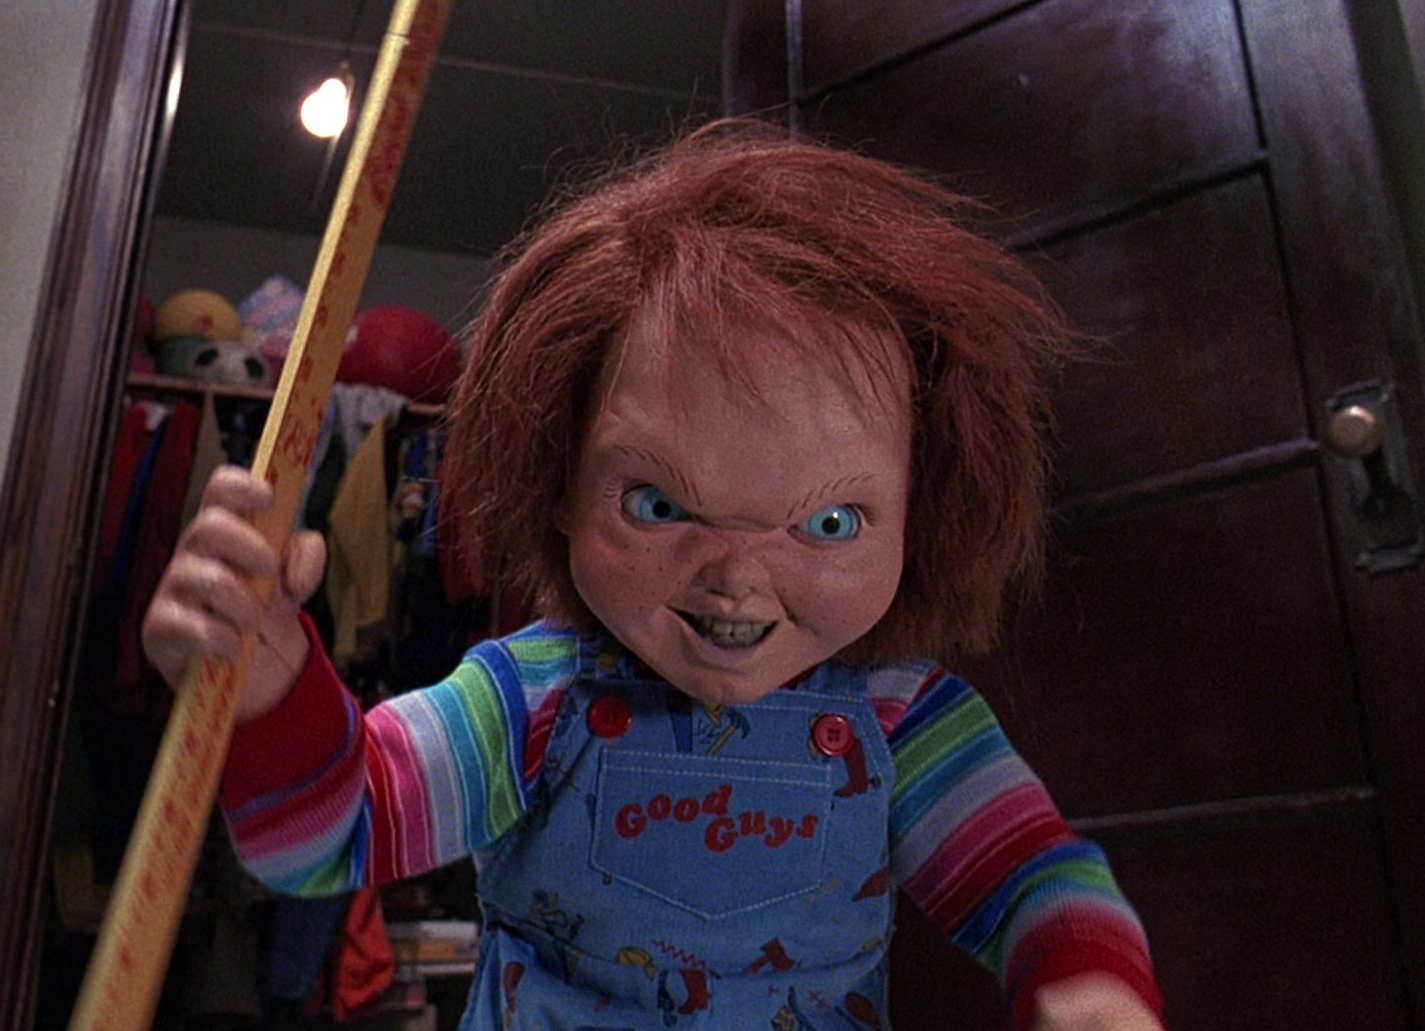 Chucky | Child's Play Wiki | FANDOM powered by Wikia